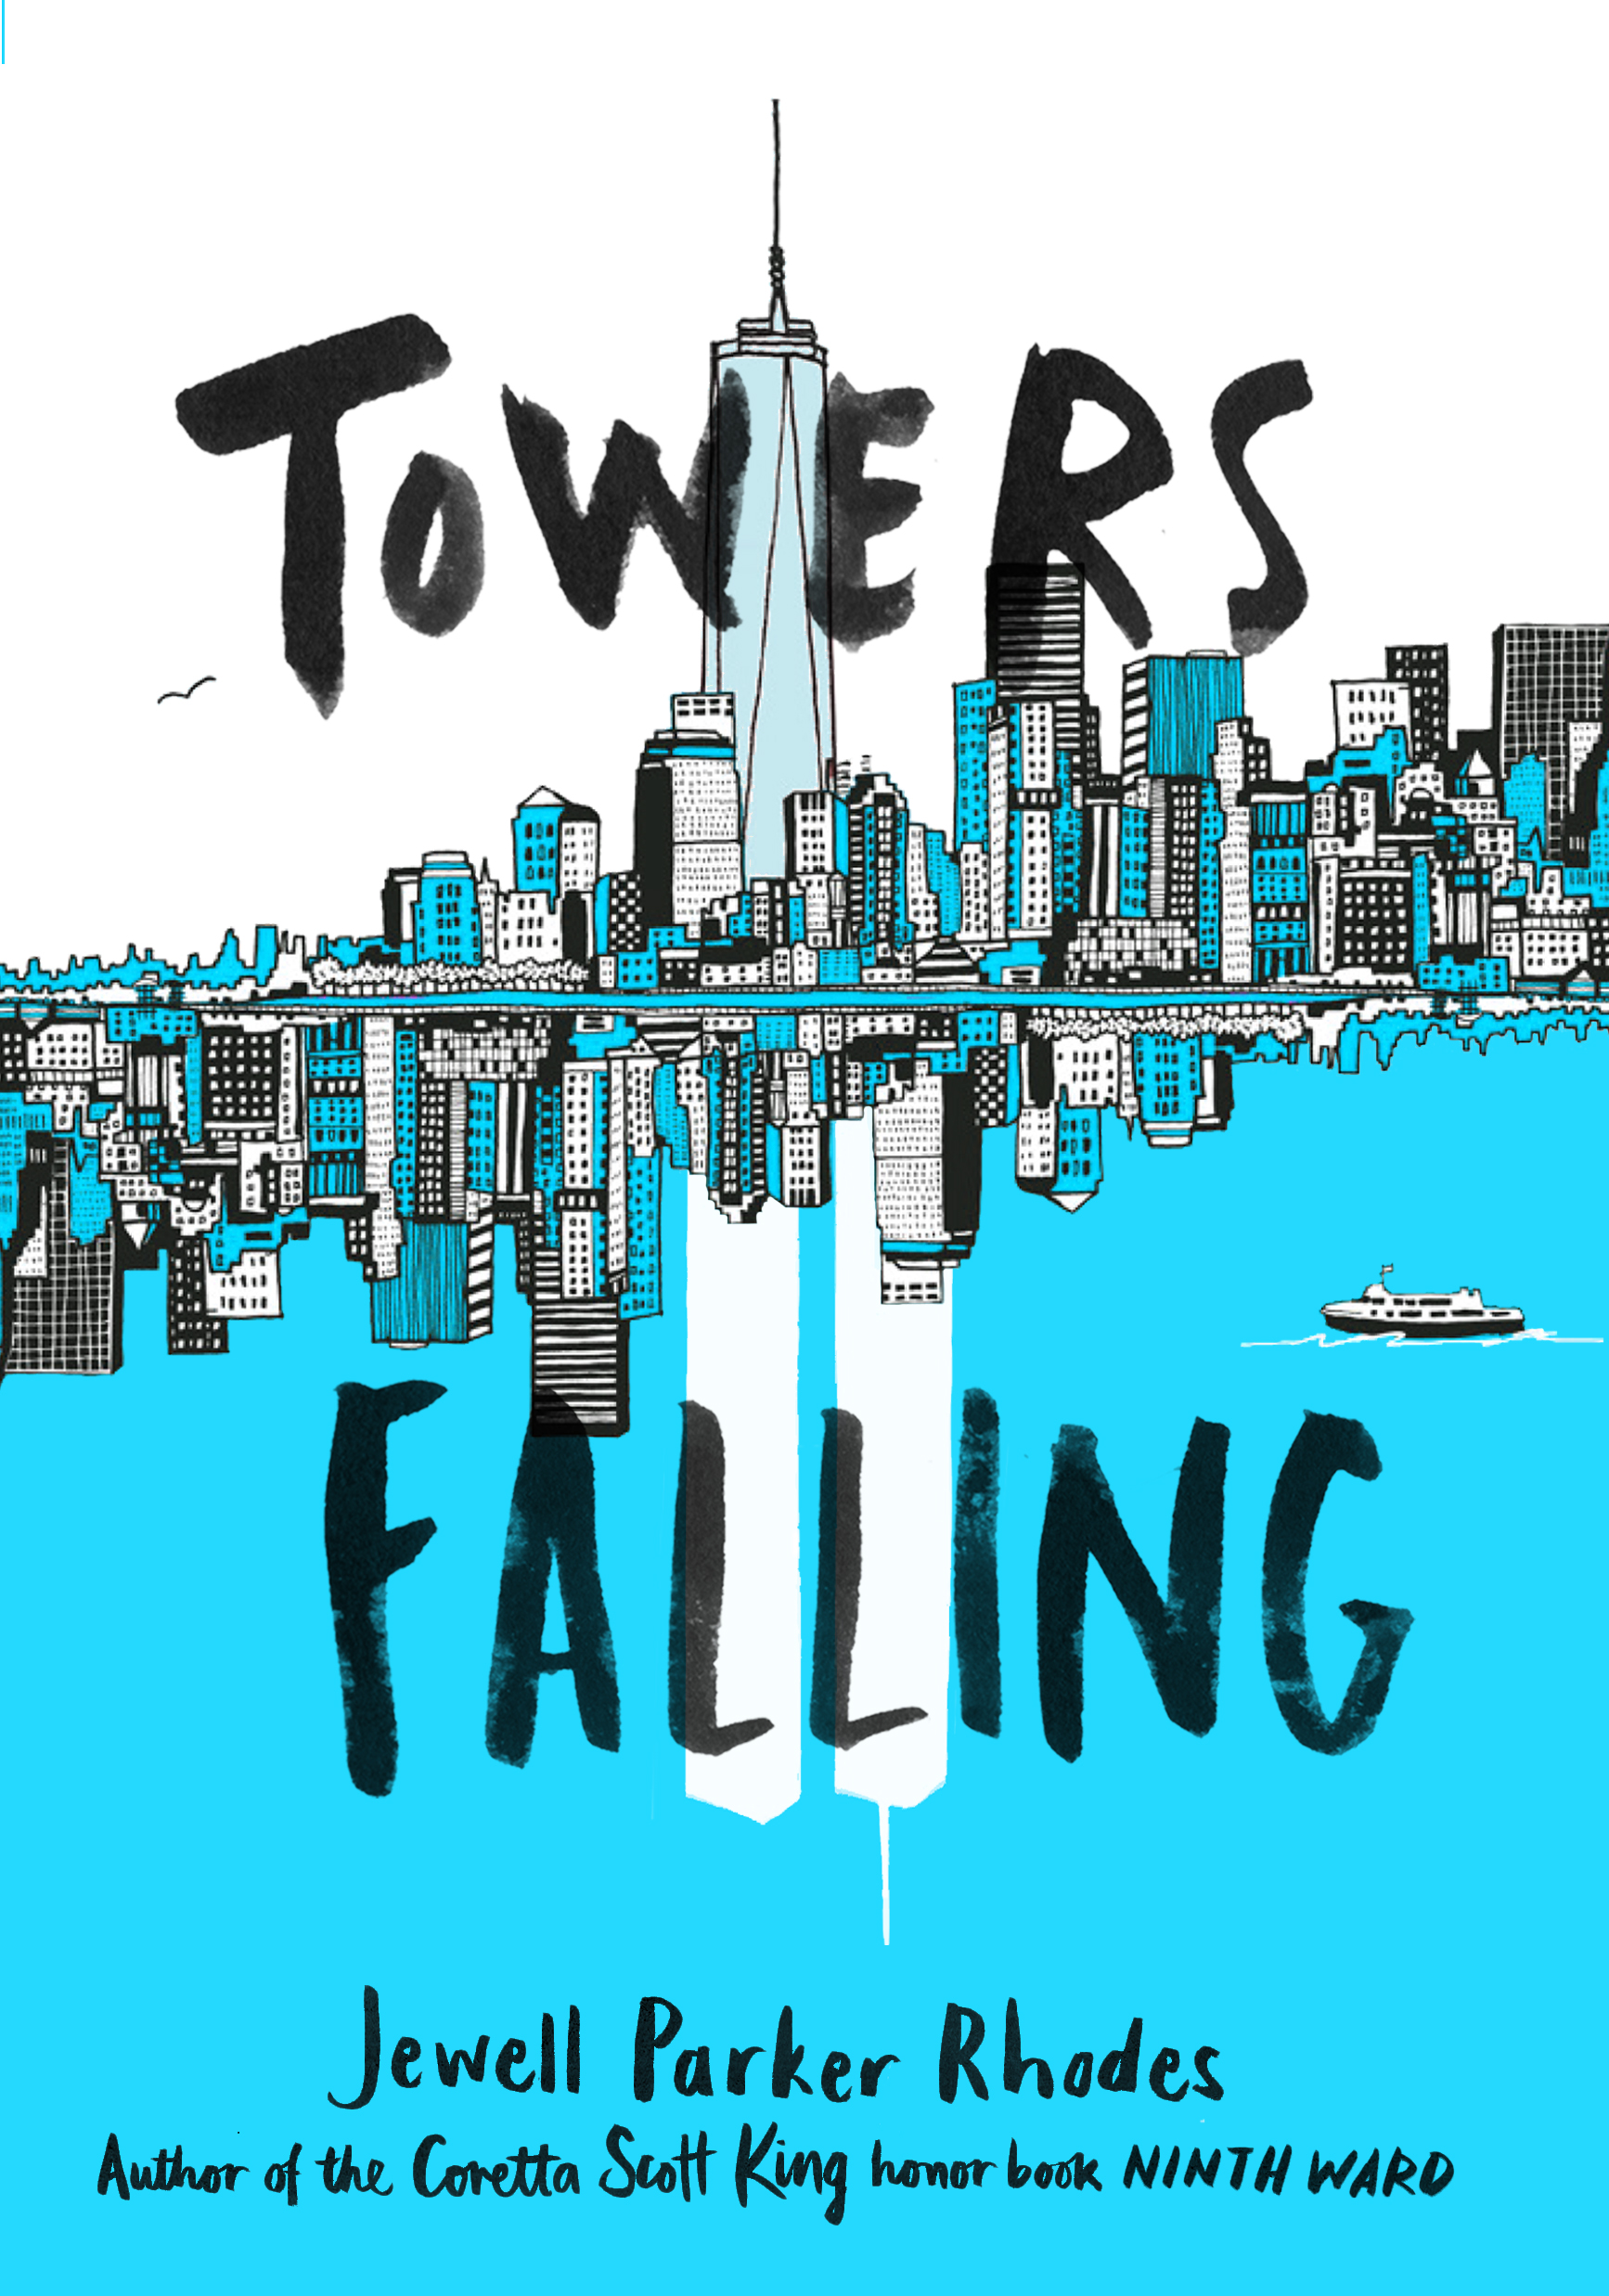 Jewell Parker Rhodes - Towers Falling - Children's Books